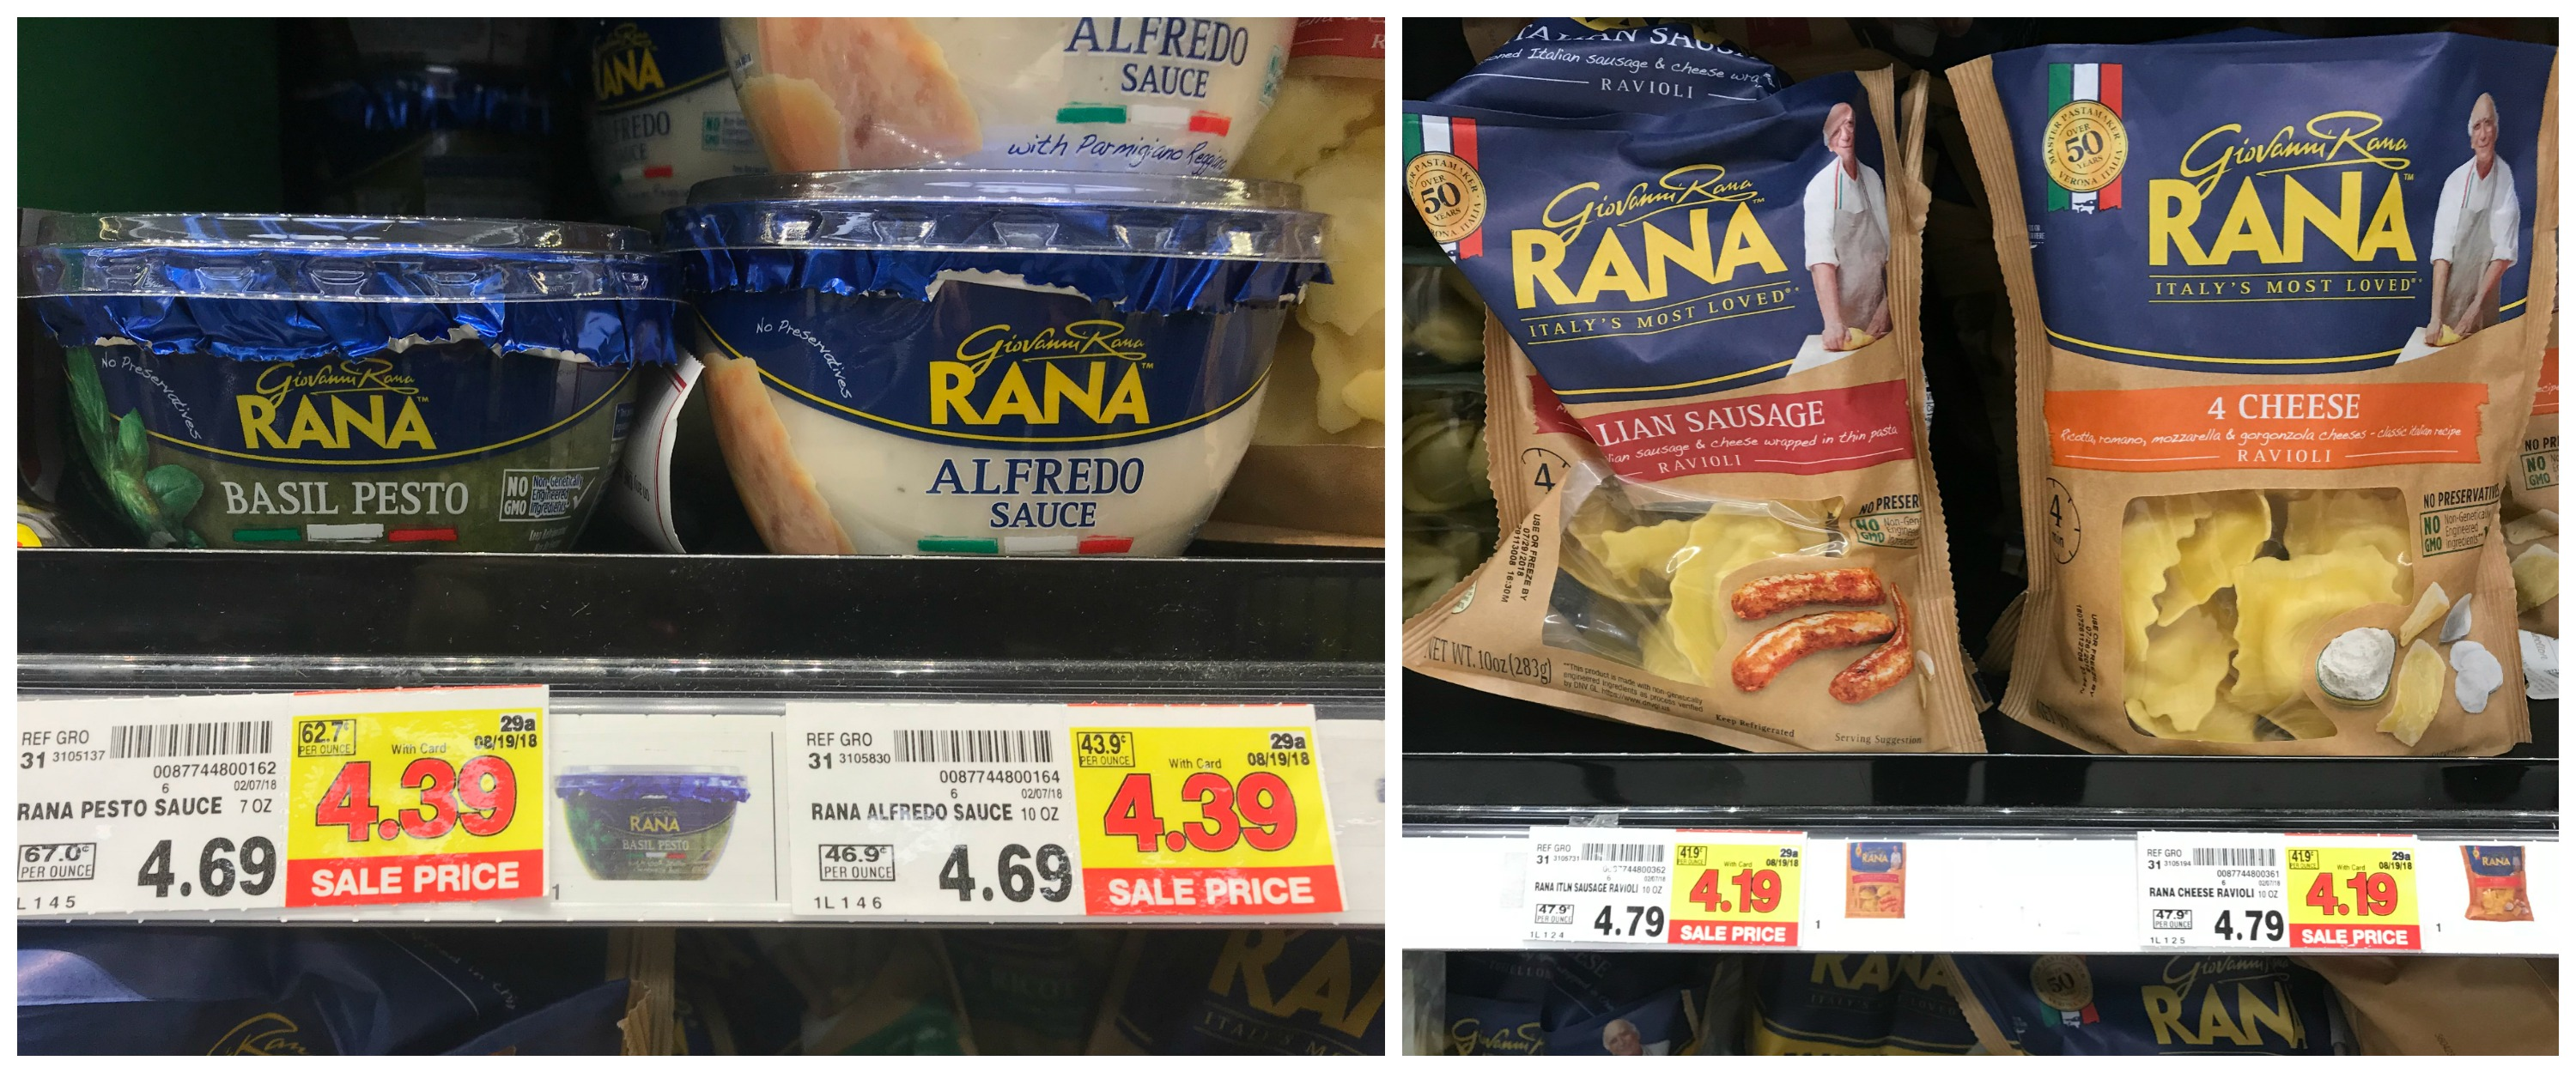 Giovanni Rana Pasta and Sauces as low as $3 19 at Kroger